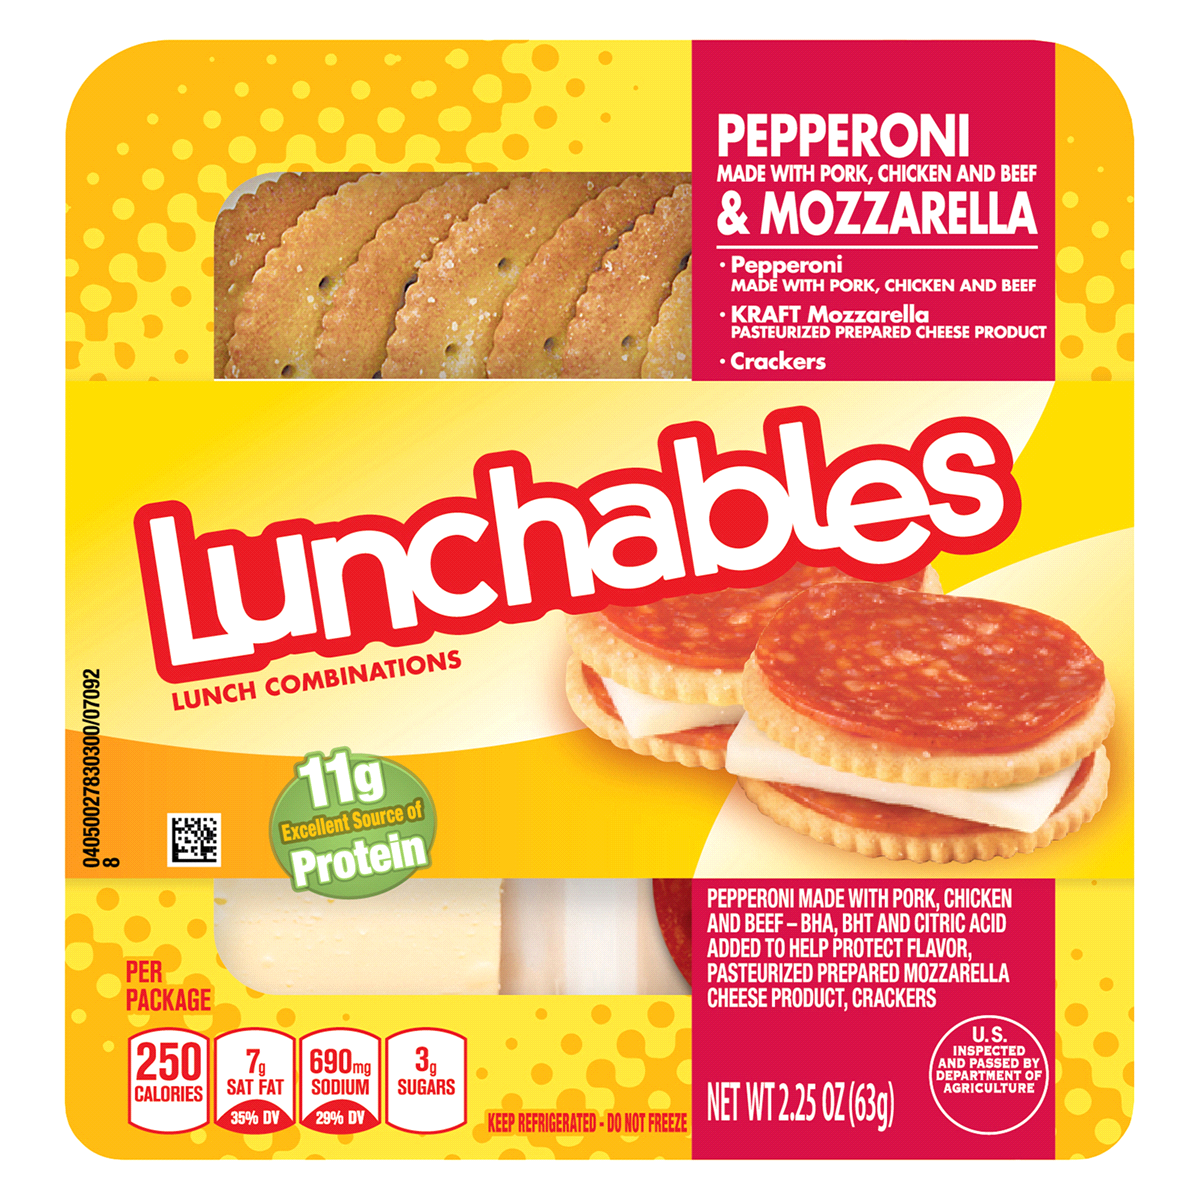 Oscar Mayer Lunchables Pepperoni & Cheese, 2.25 oz Tray.